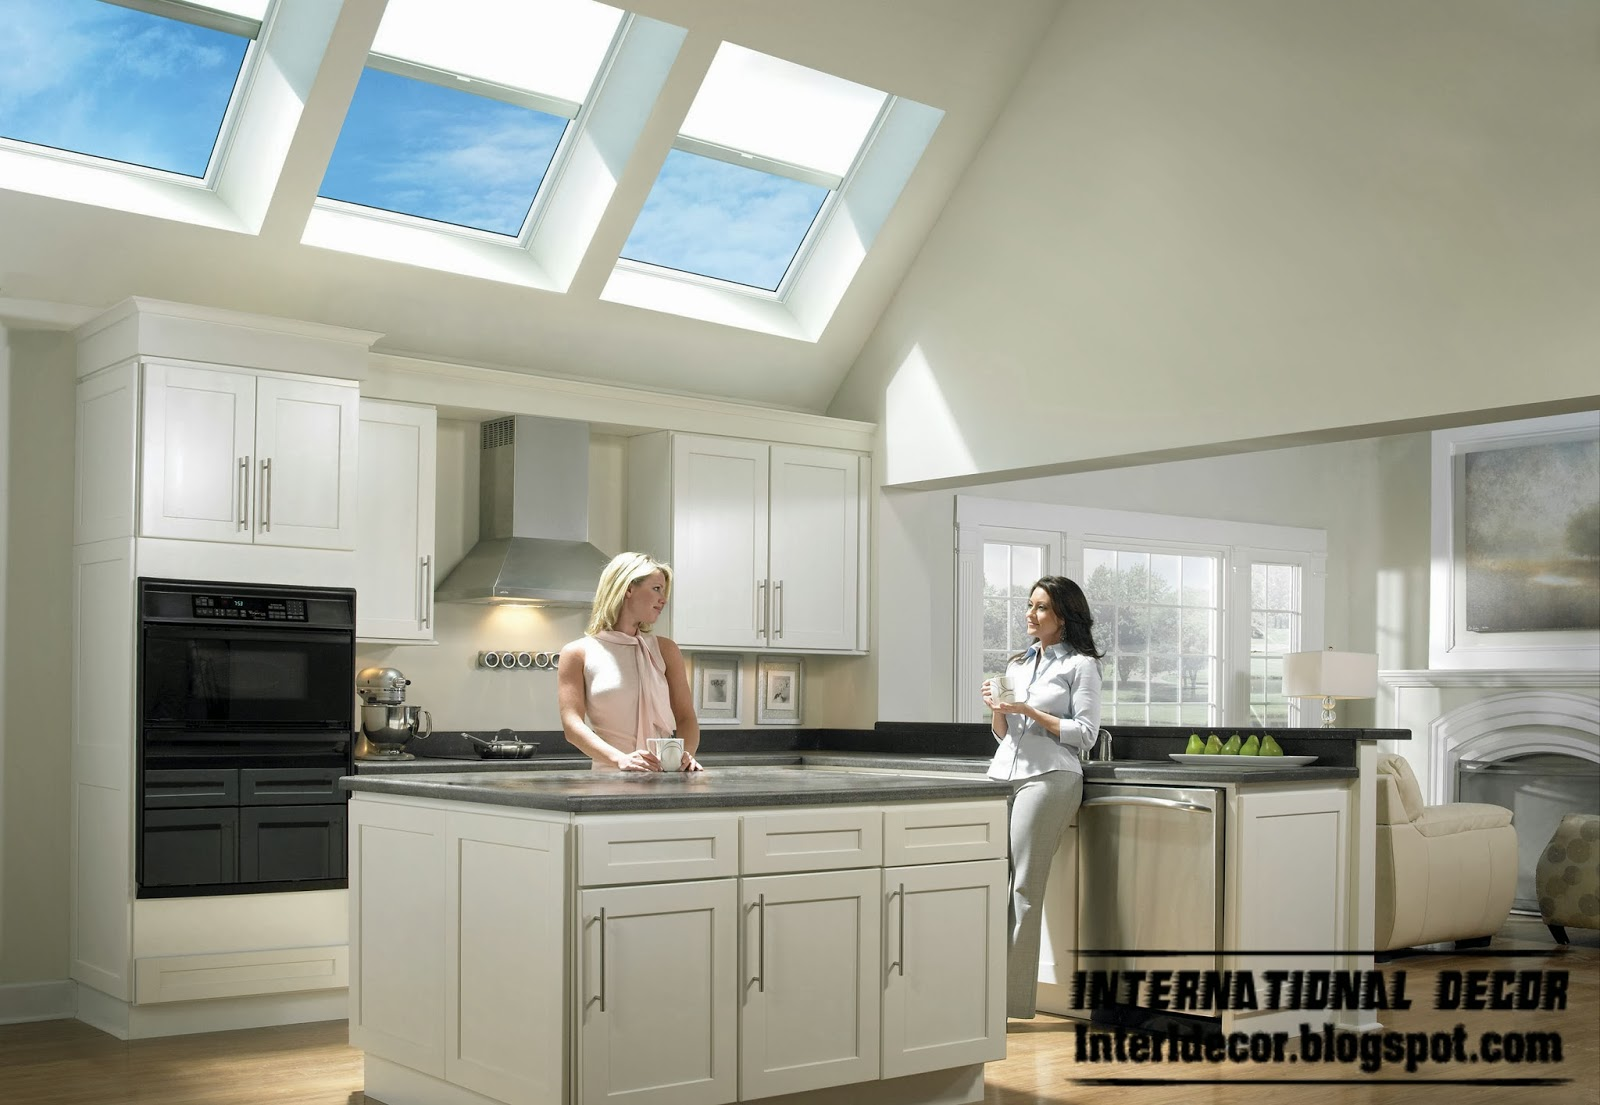 kitchen skylight designs, skylight windows